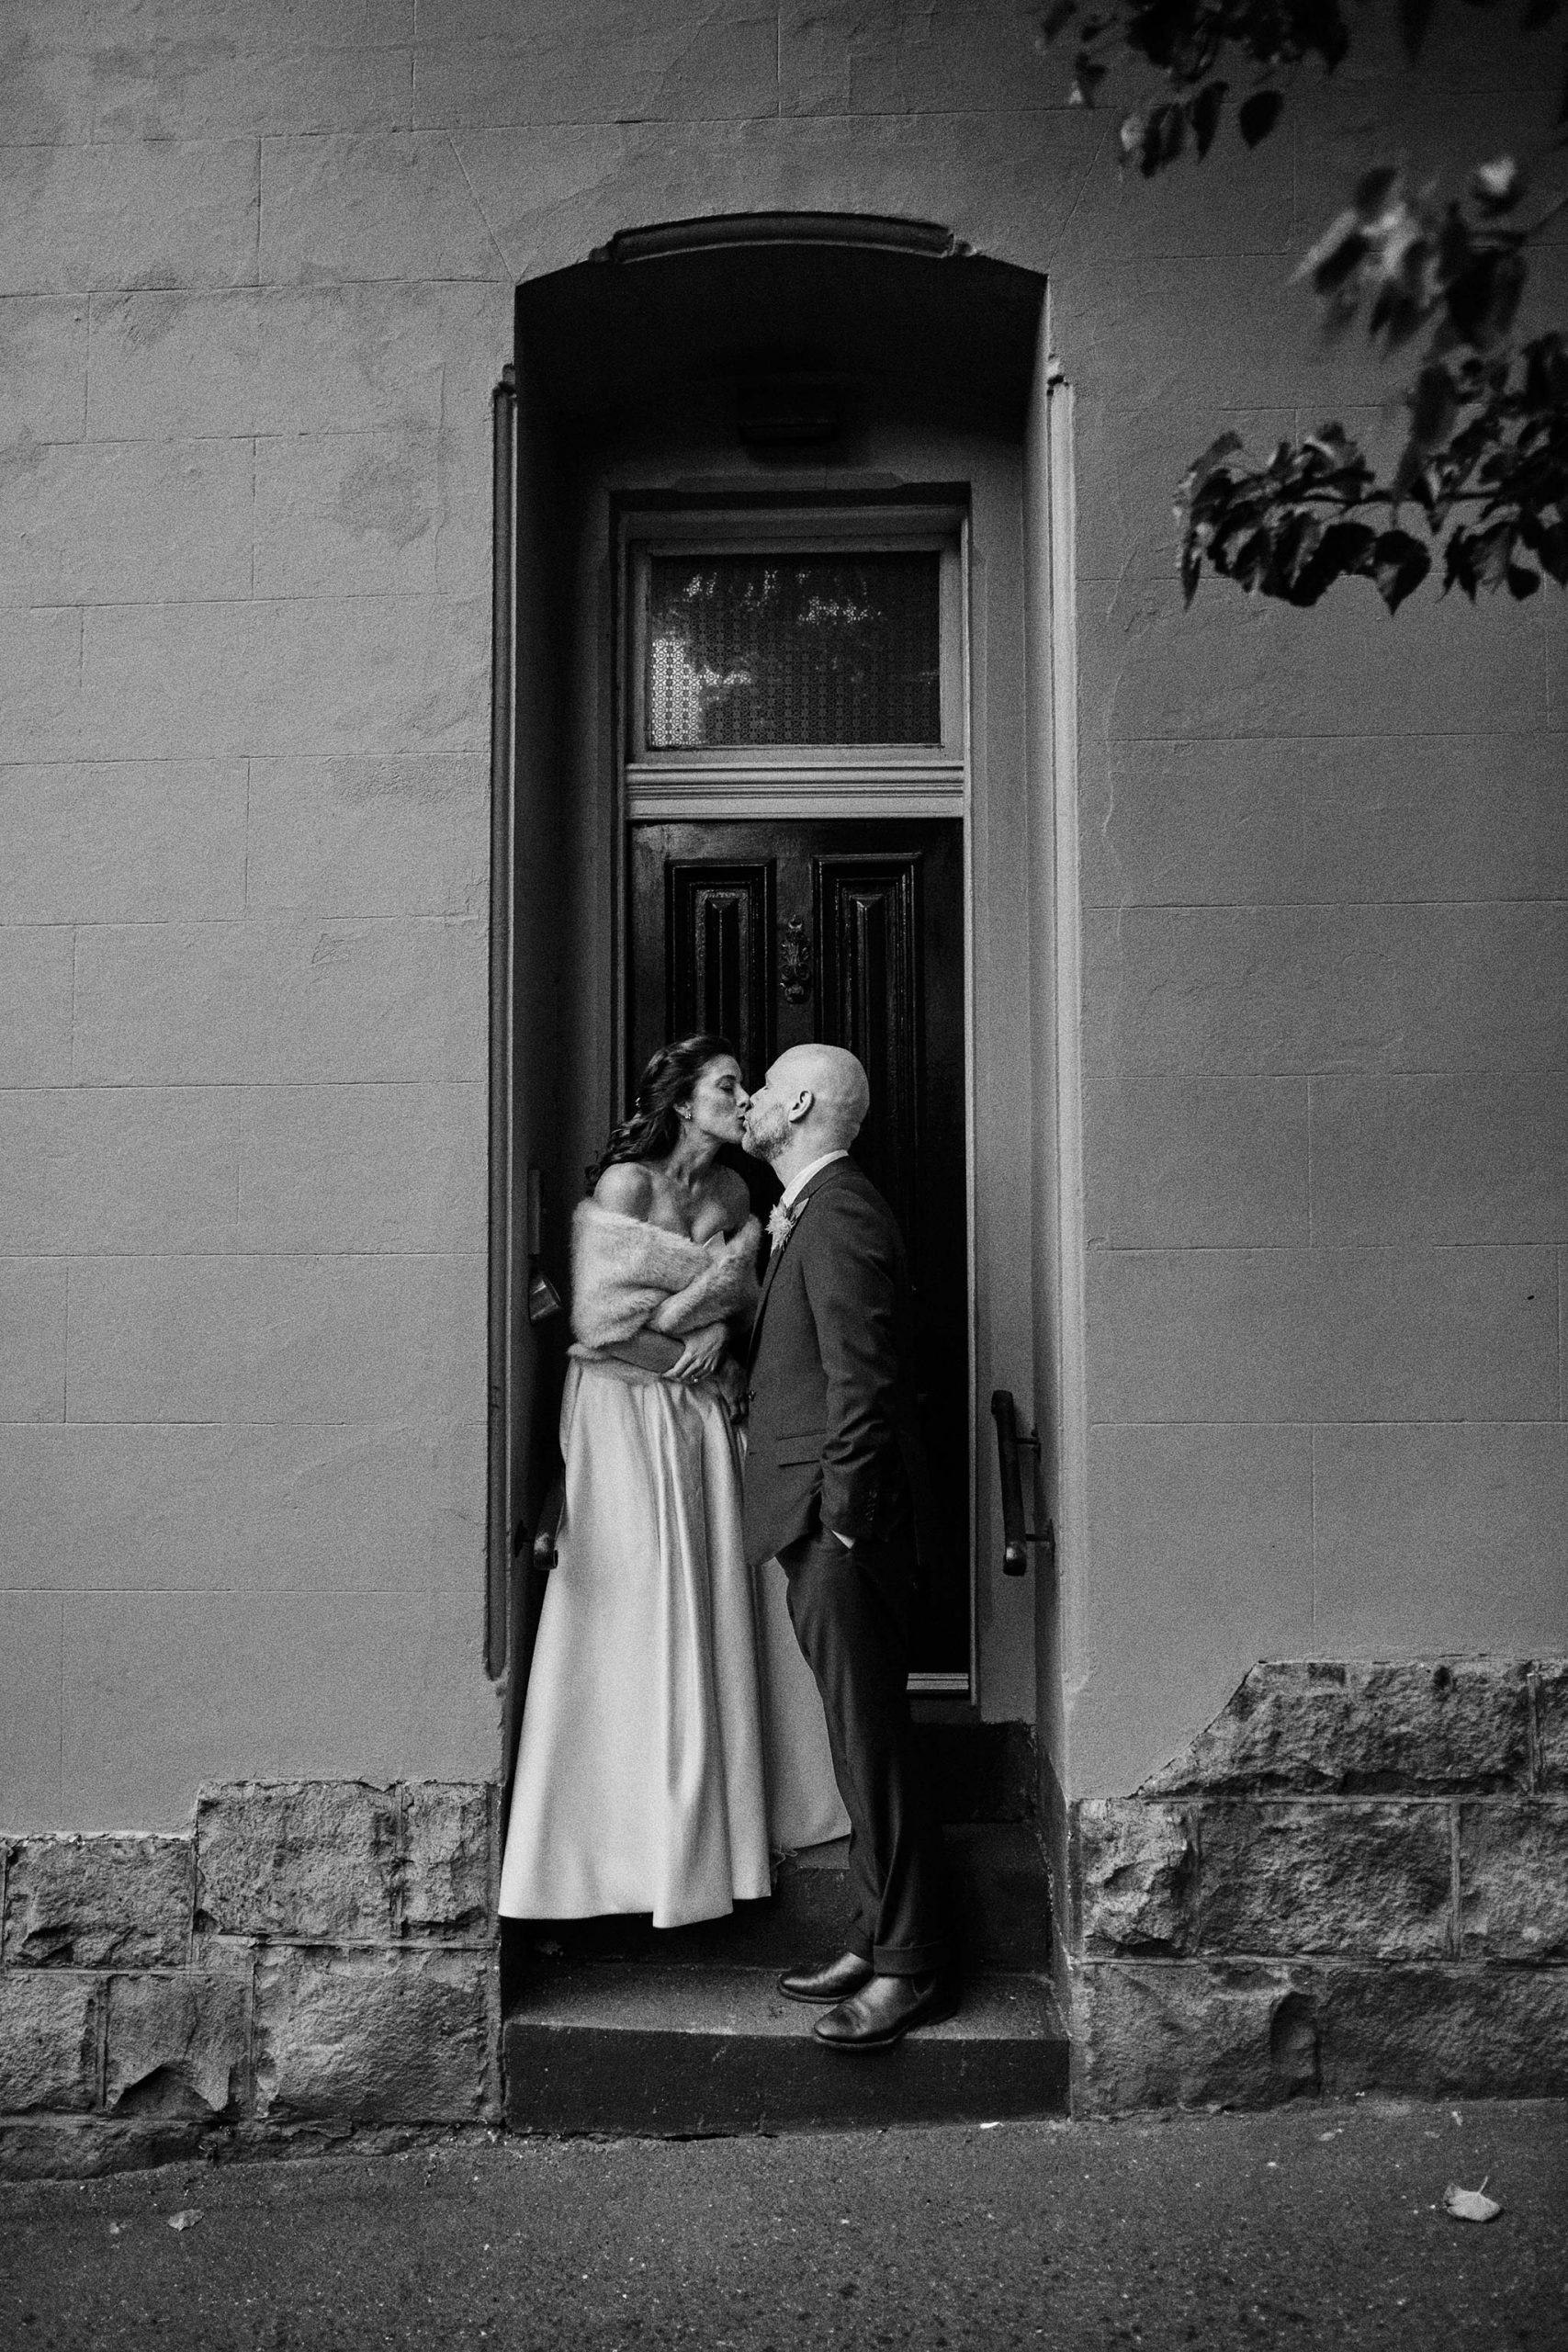 East Melbourne Wedding rain portrait bride groom umbrella elegant kiss